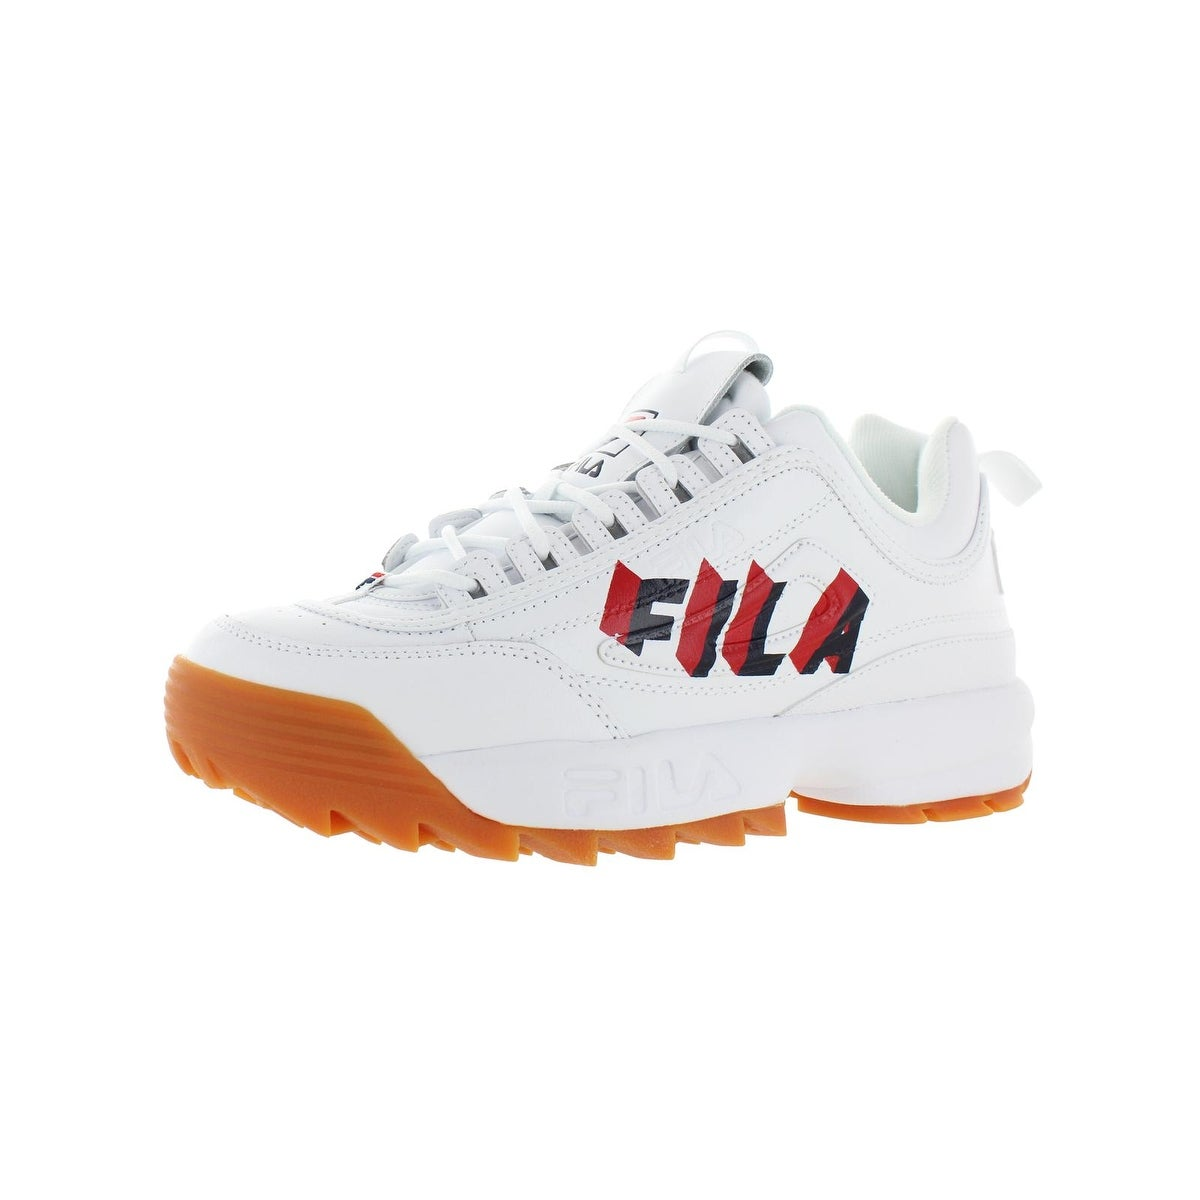 Fila Mens Disruptor II Perspective Sneakers Leather Trainers